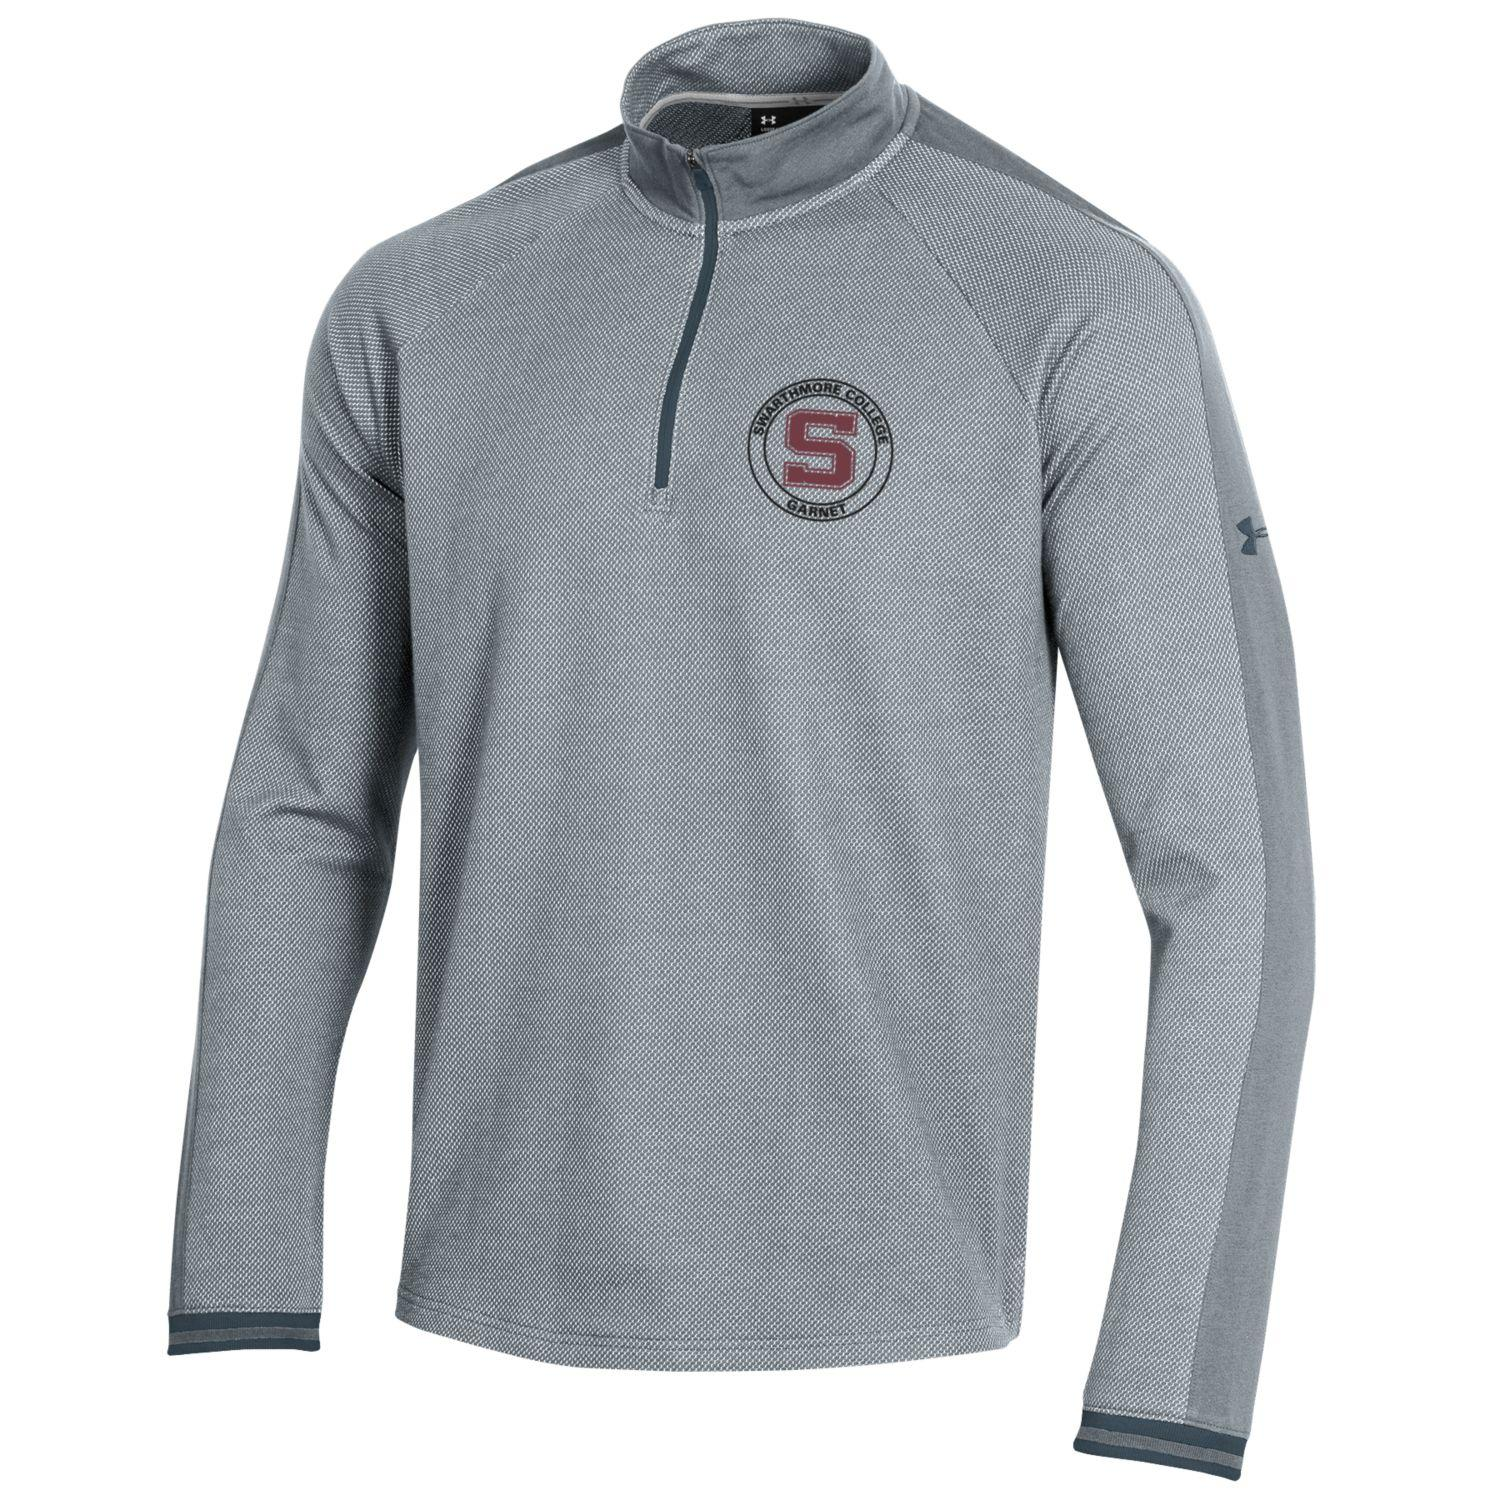 Cover Image For Under Armour Skybox 1/4 zip